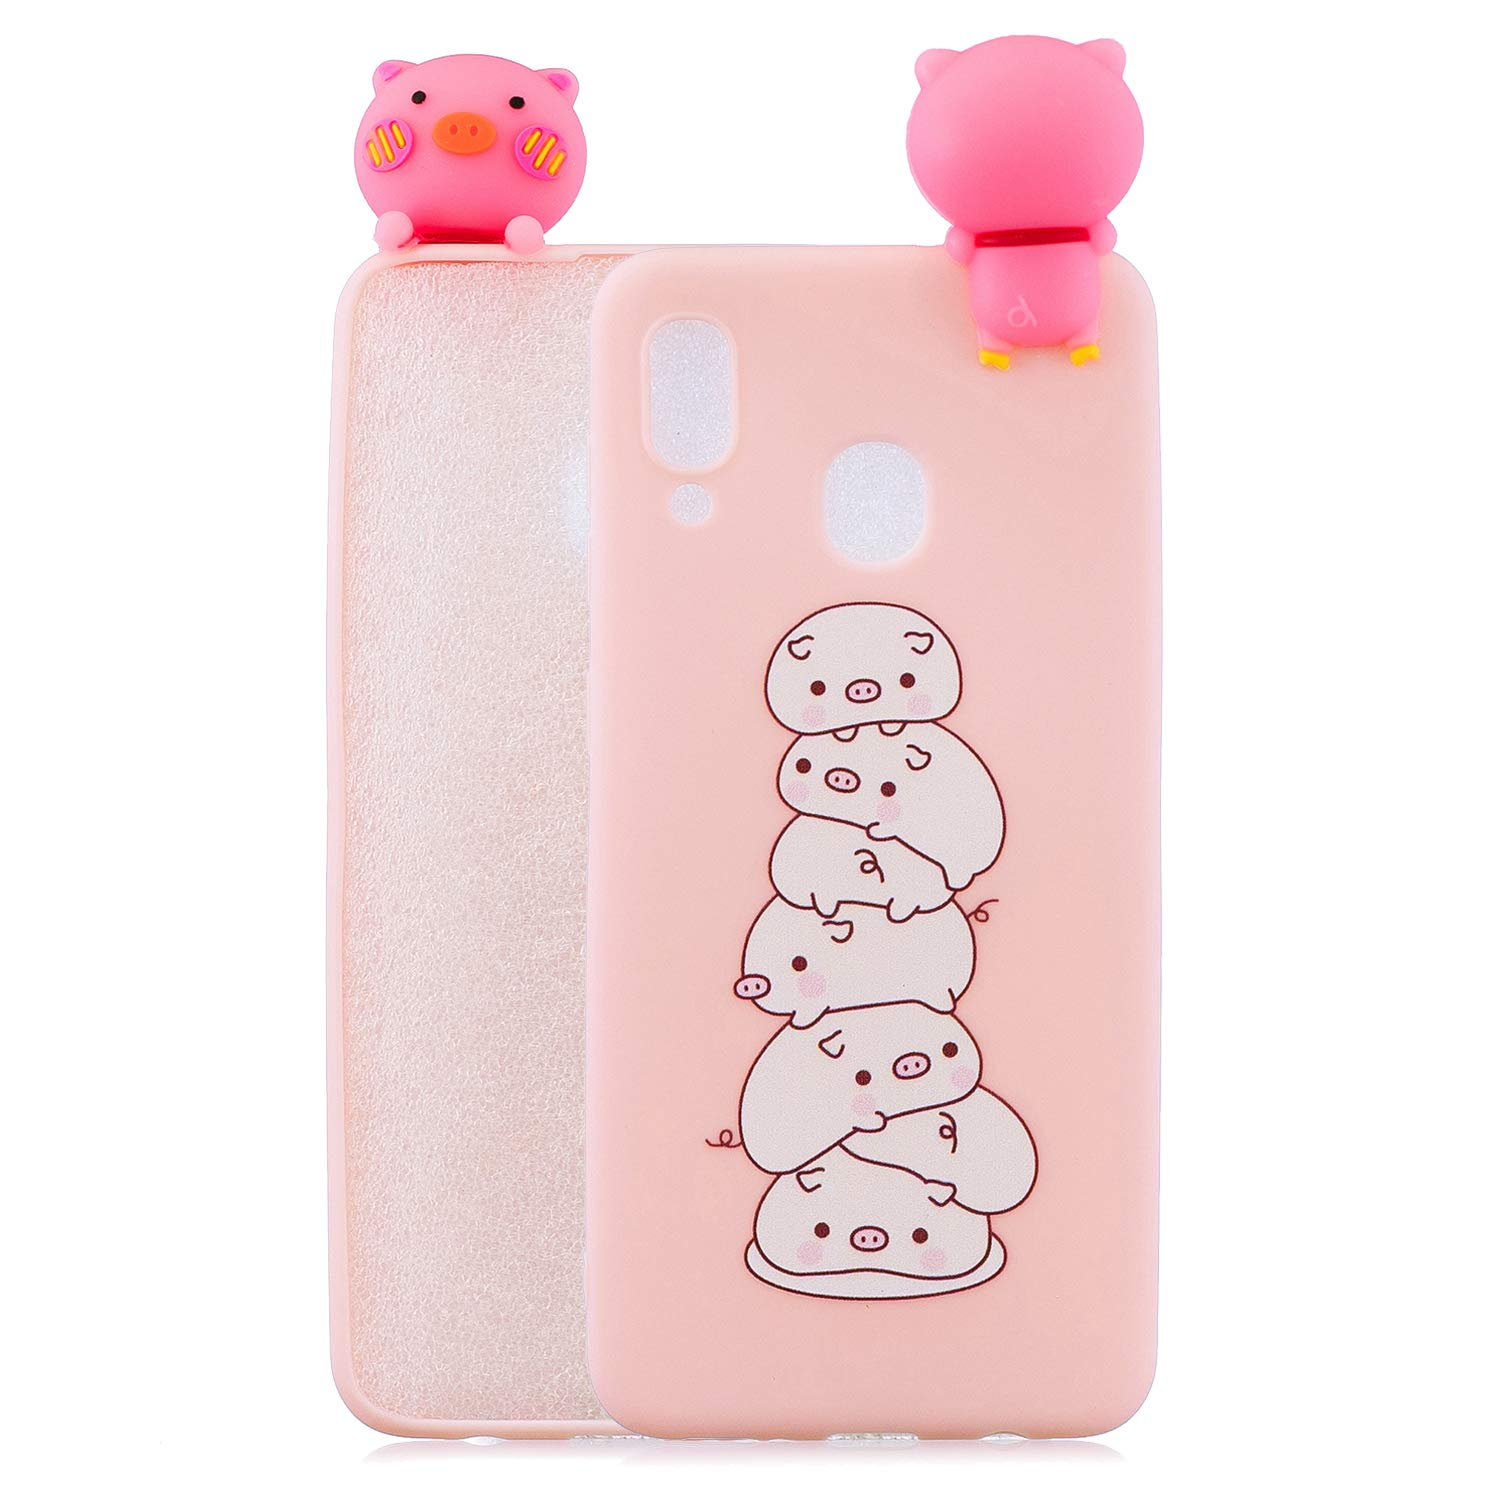 Crystal Gel Flexible Compatible with Huawei P Smart 2019 //Honor 10 Lite,Soft Thin Slim Anti-Scratches Shock Absorption Clear Transparent Silicone Colorful Animal Cartoon TPU Elastic Bumper